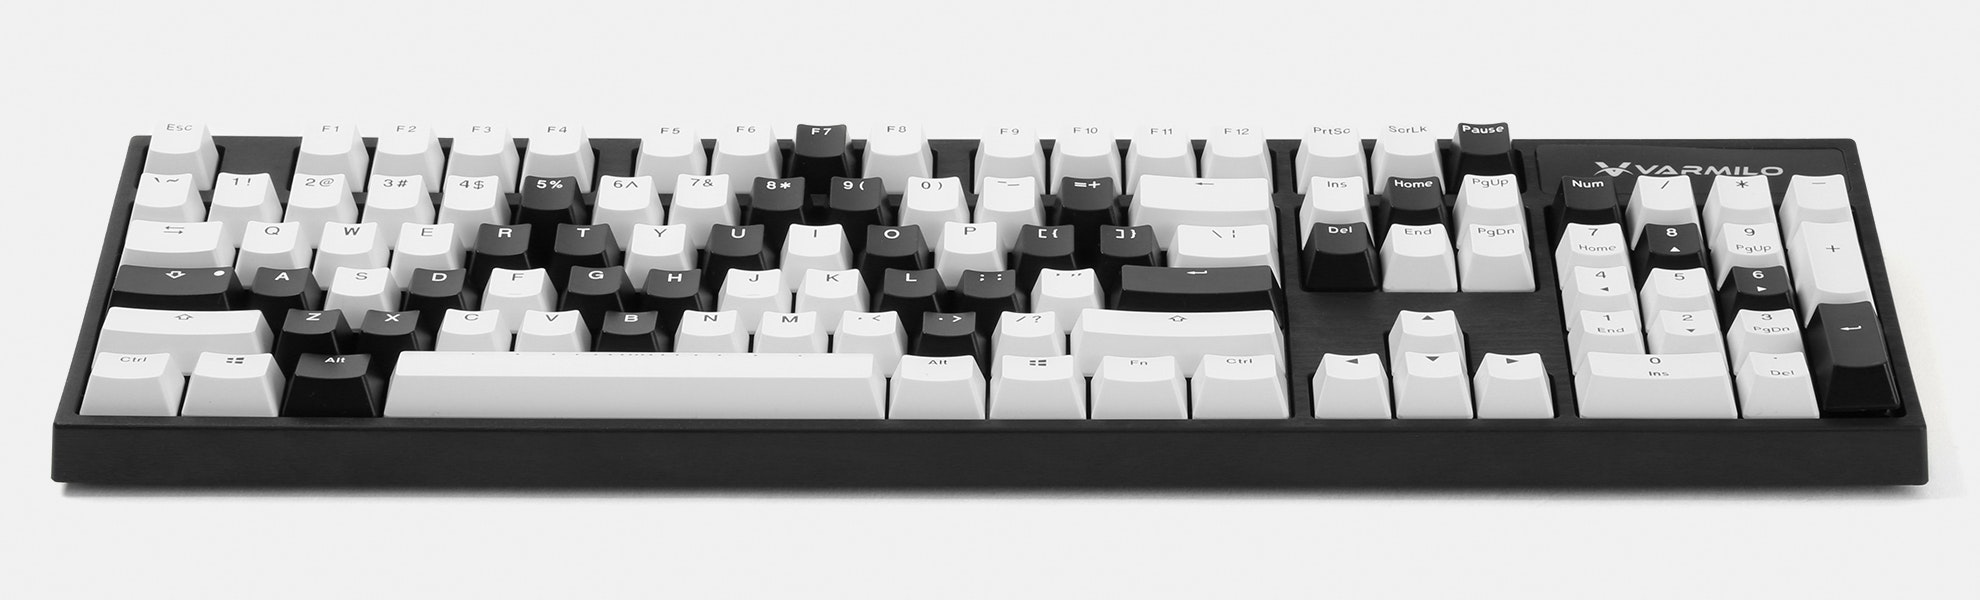 Varmilo 10th Anniversary Z104 Mechanical Keyboard